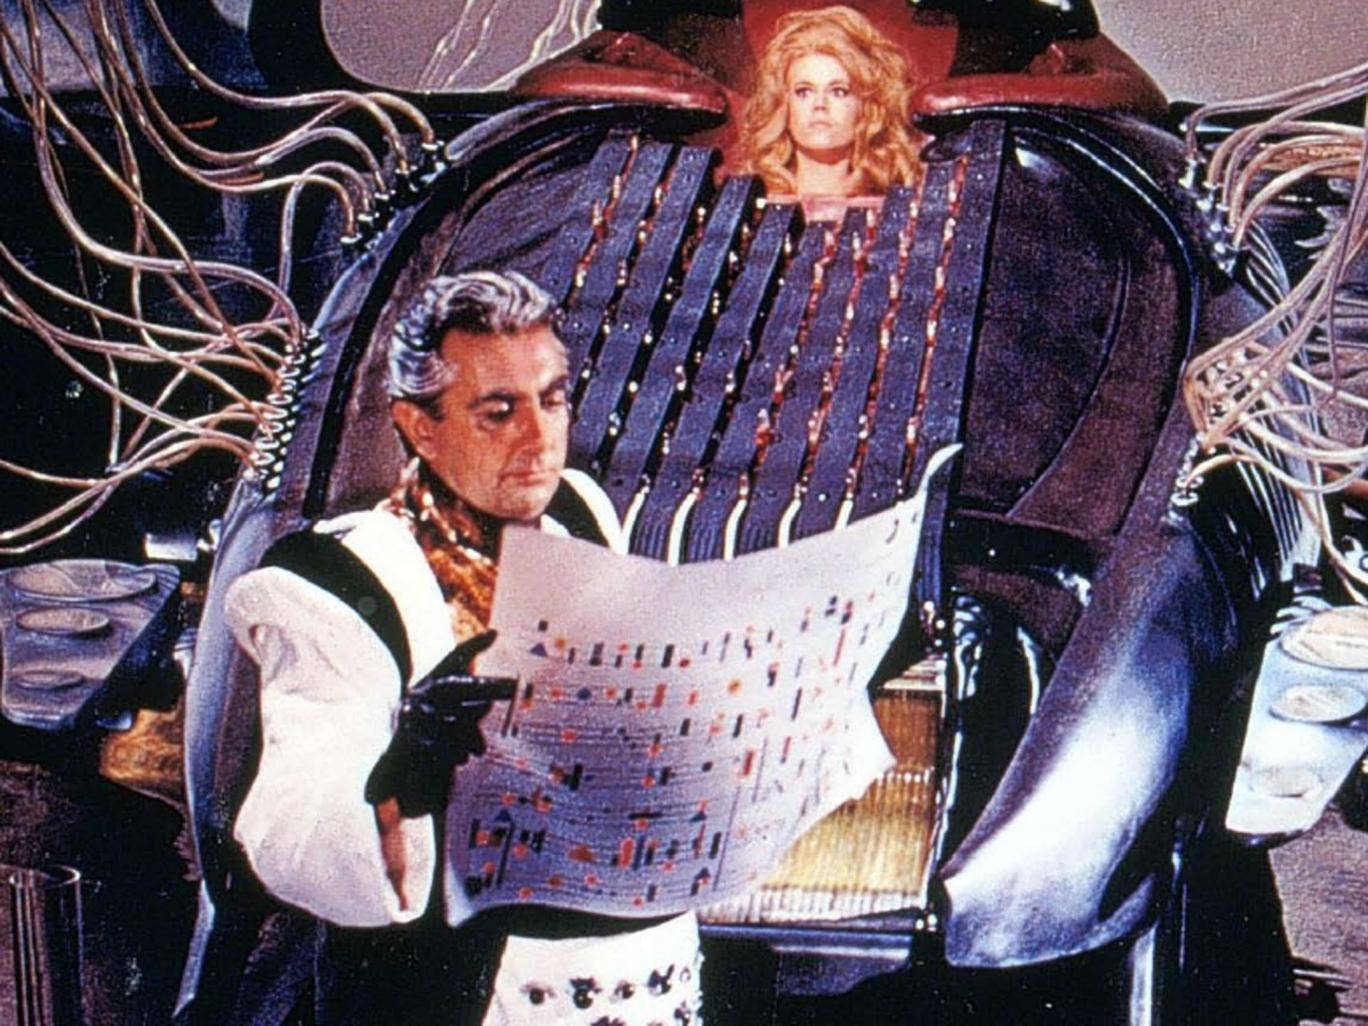 O'Shea as the inventor Durand Durand, with Jane Fonda in Roger Vadim's cult classic 'Barbarella'